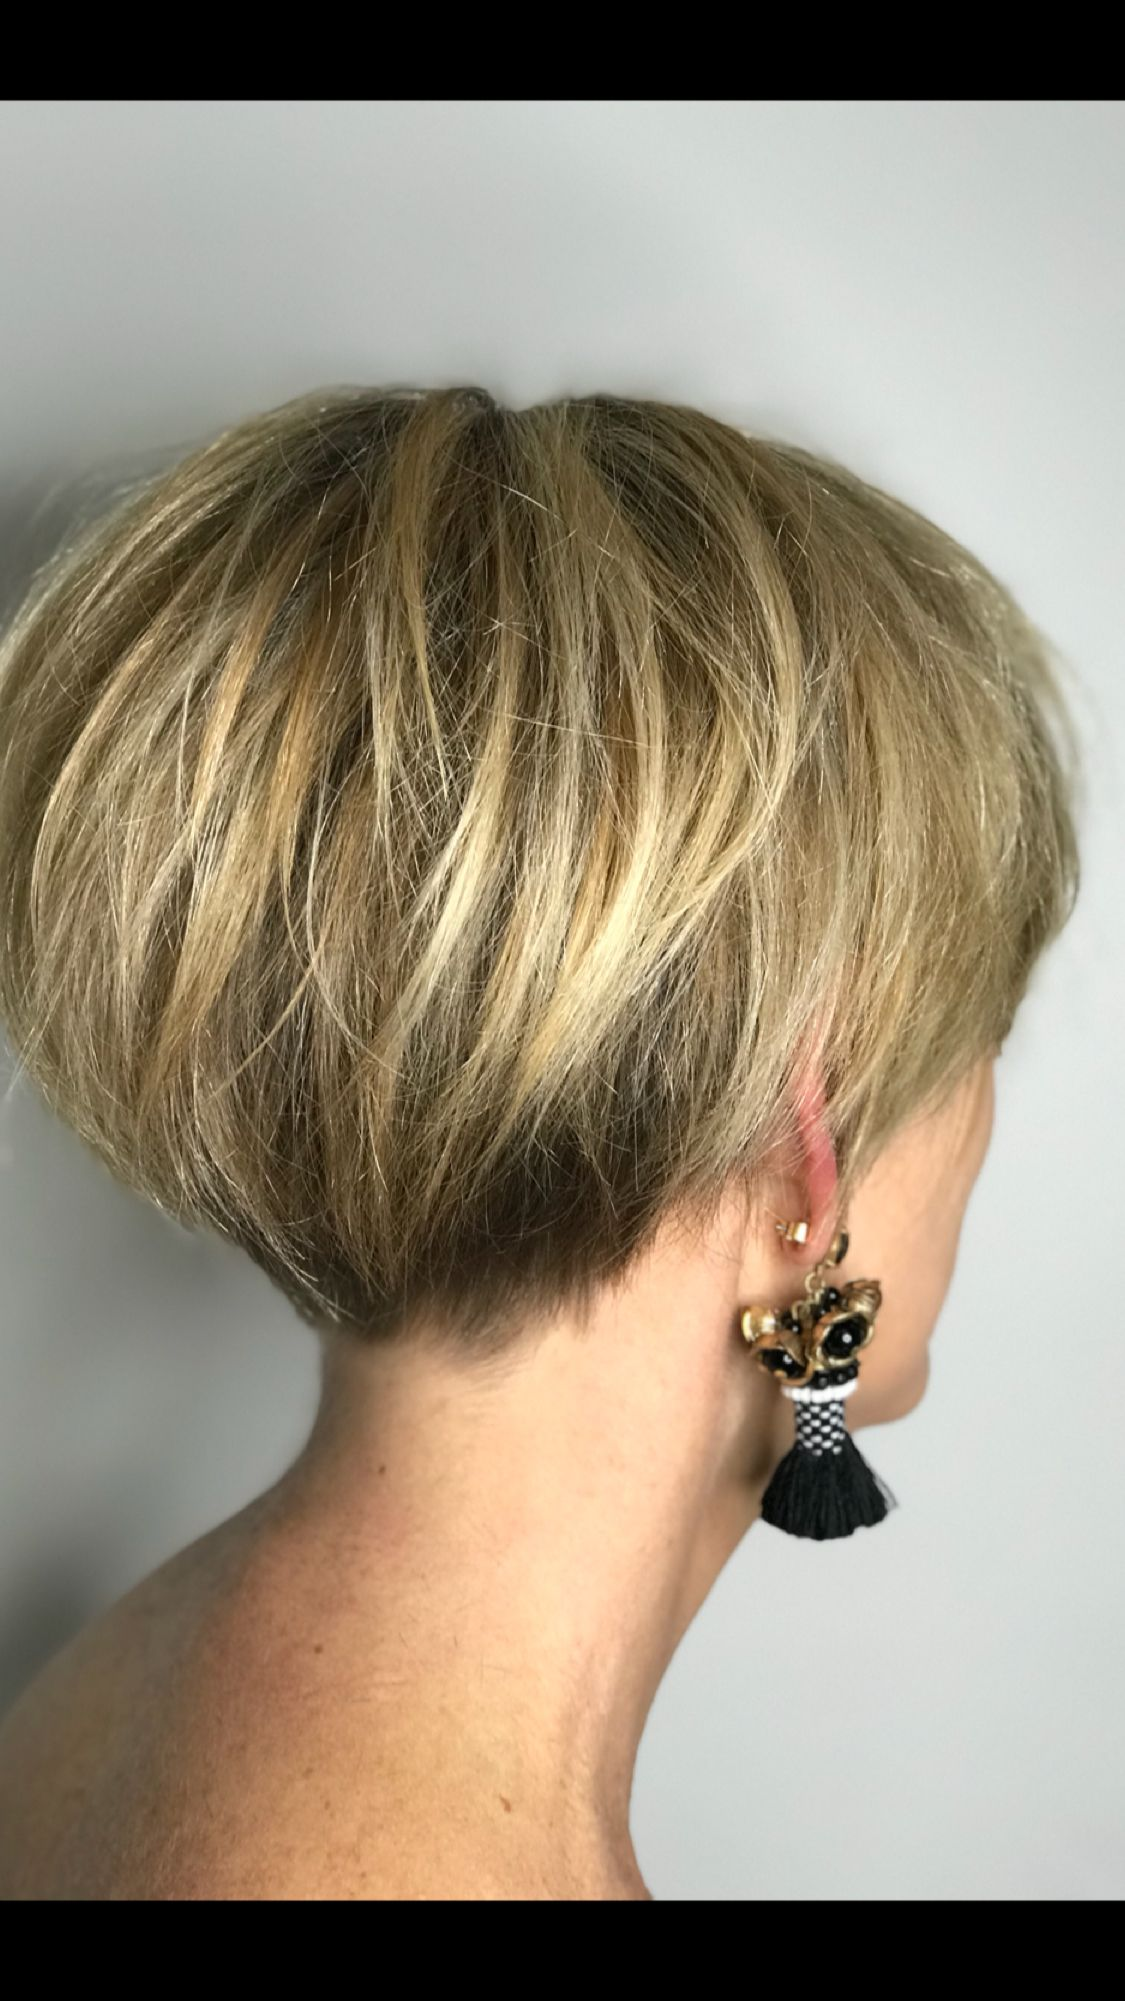 Pin by sharon woody on Hair style | Hair cuts, Short hair ...